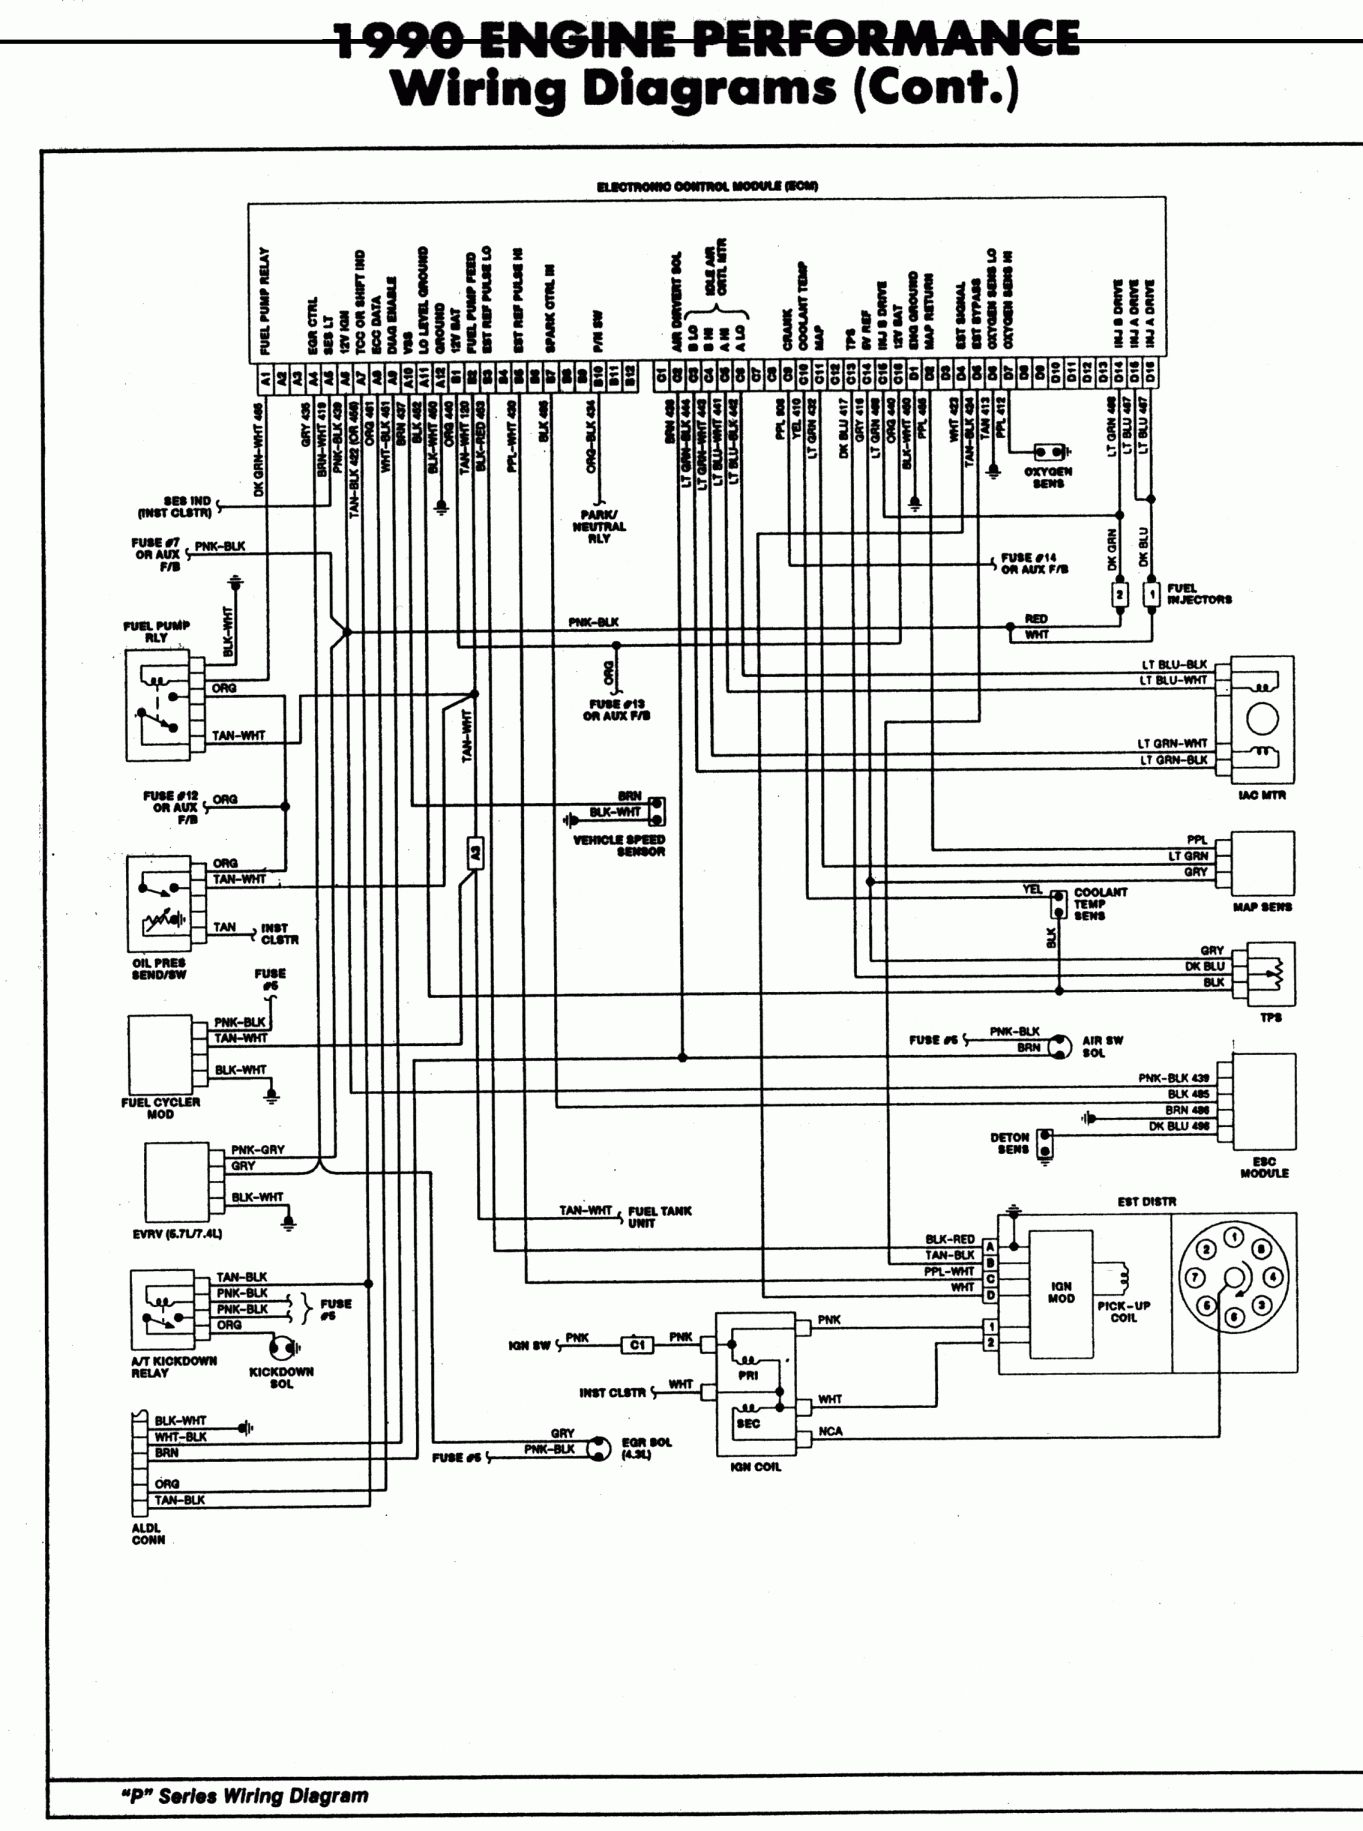 Images Of Fuel System Wiring Diagram For Chevy